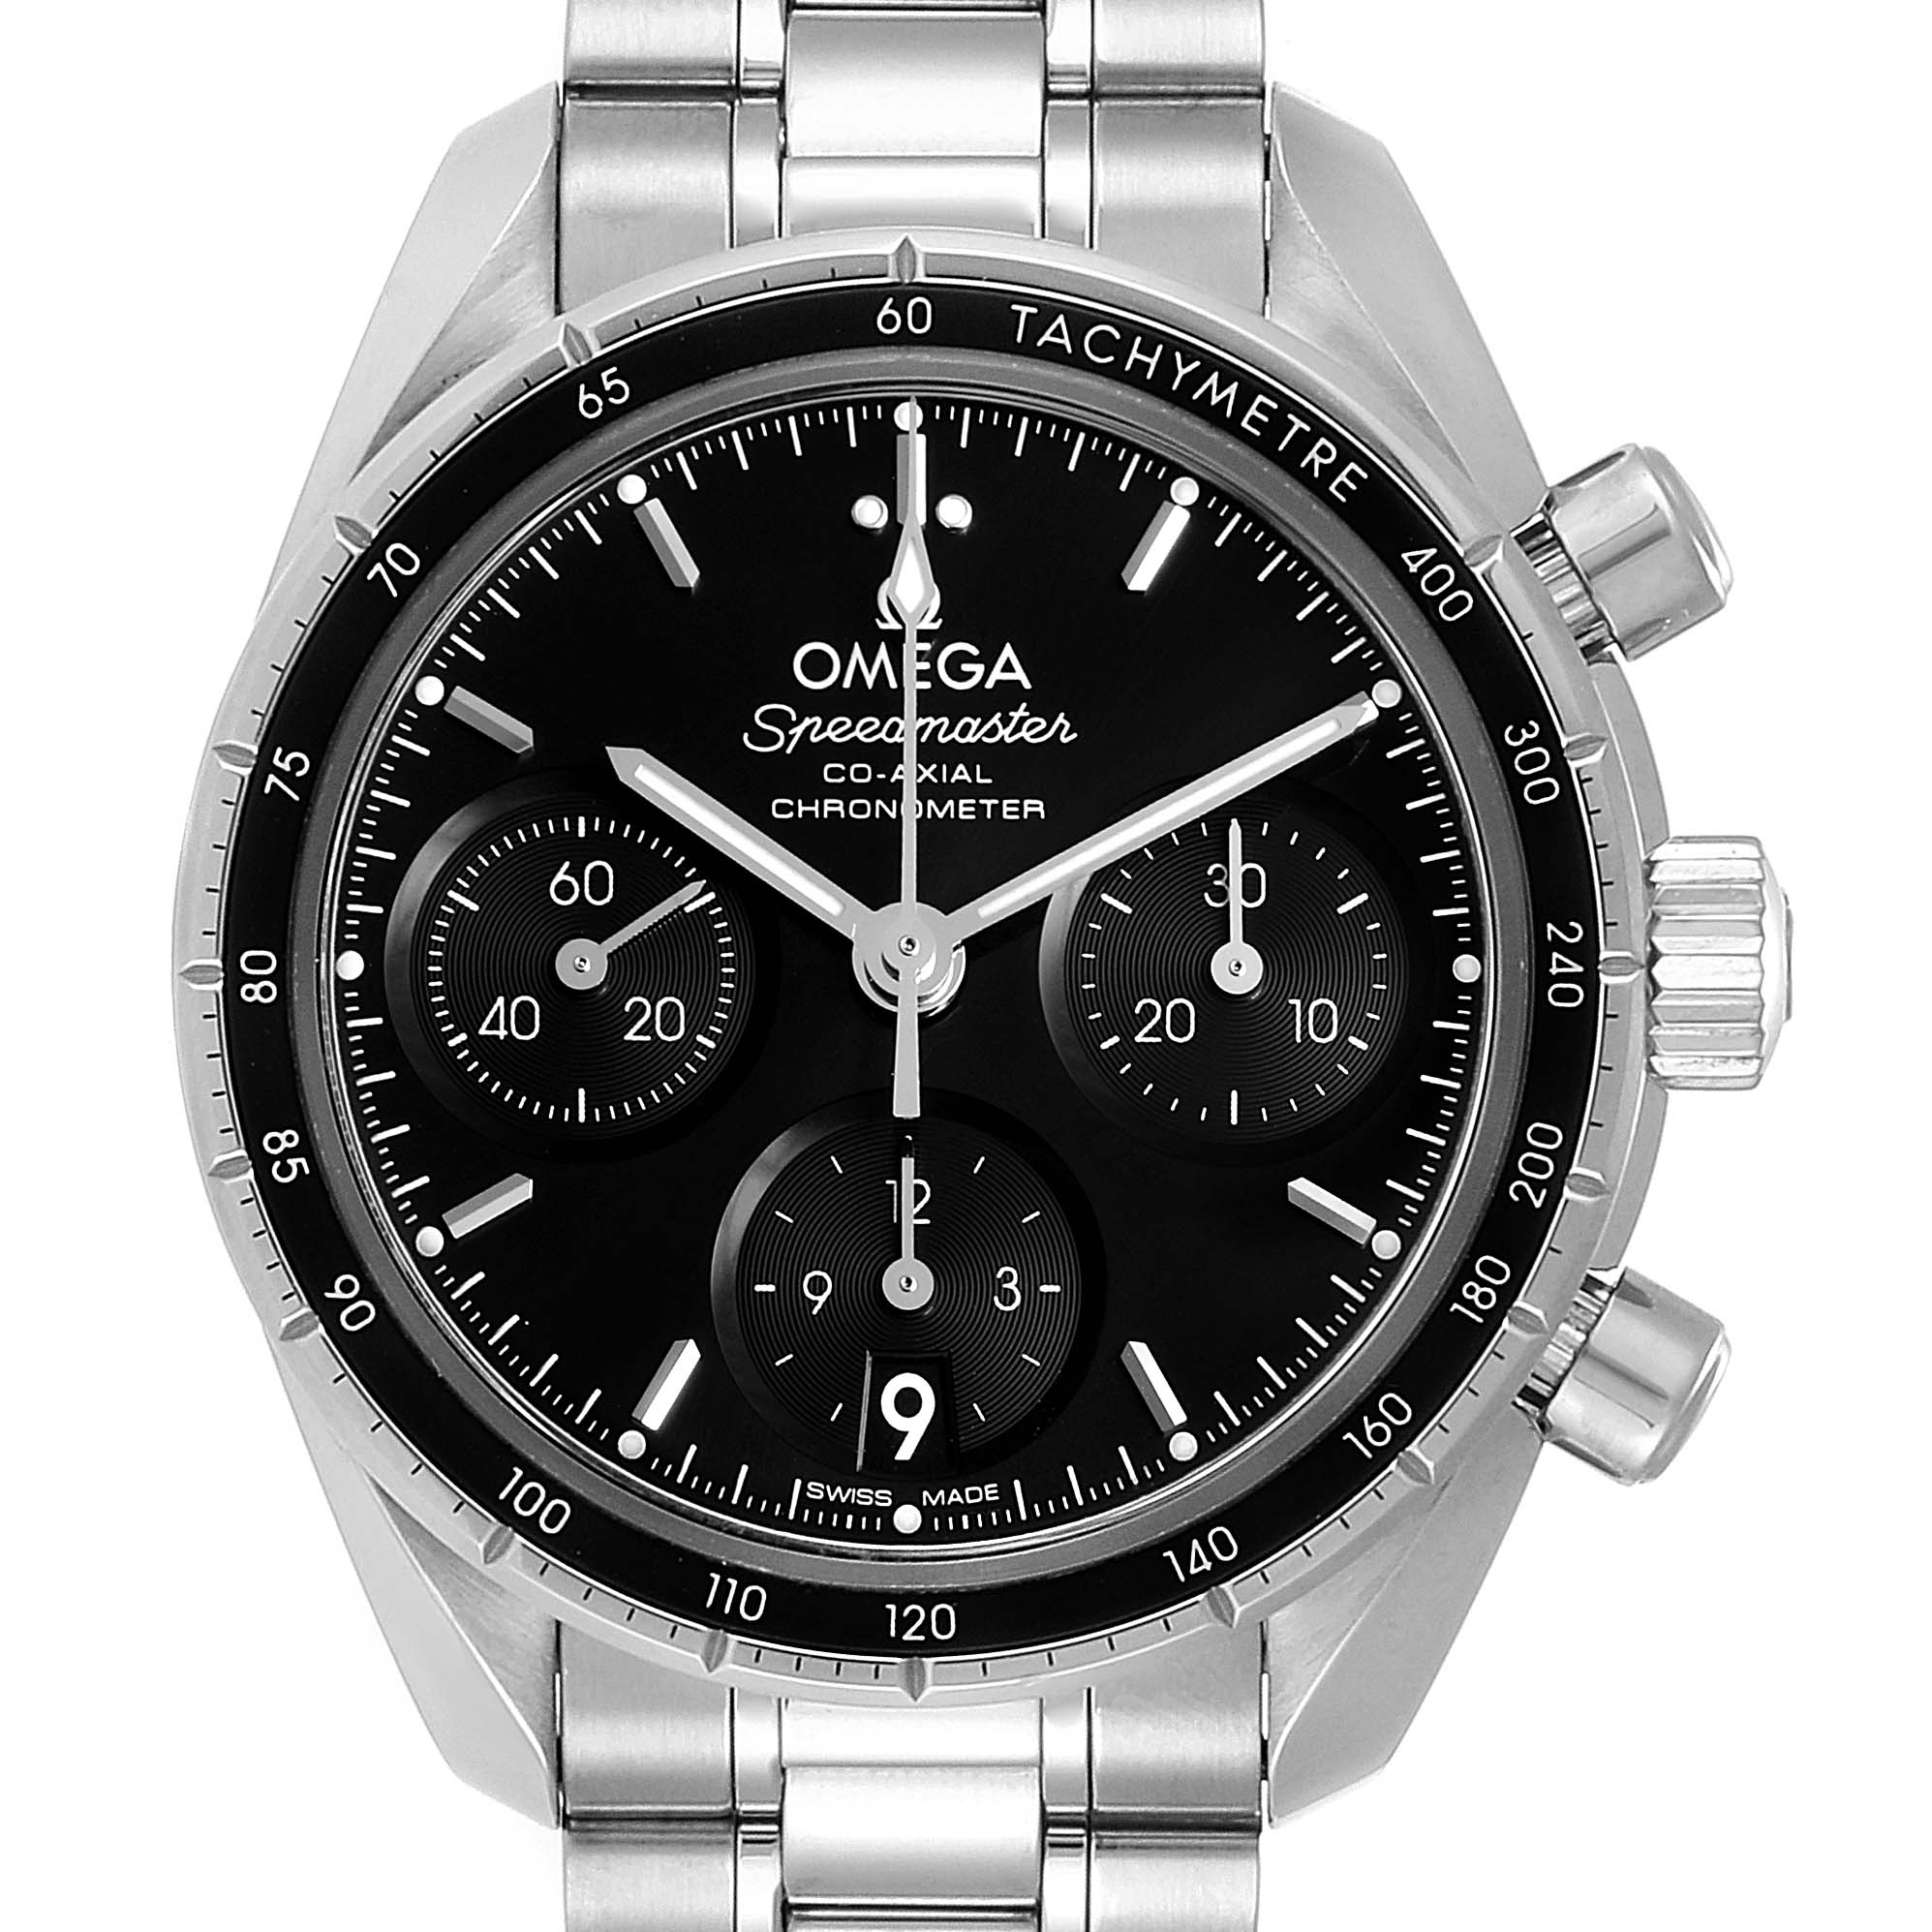 Omega Speedmaster 38 Co-Axial Chronograph Watch 324.30.38.50.01.001 Box Card